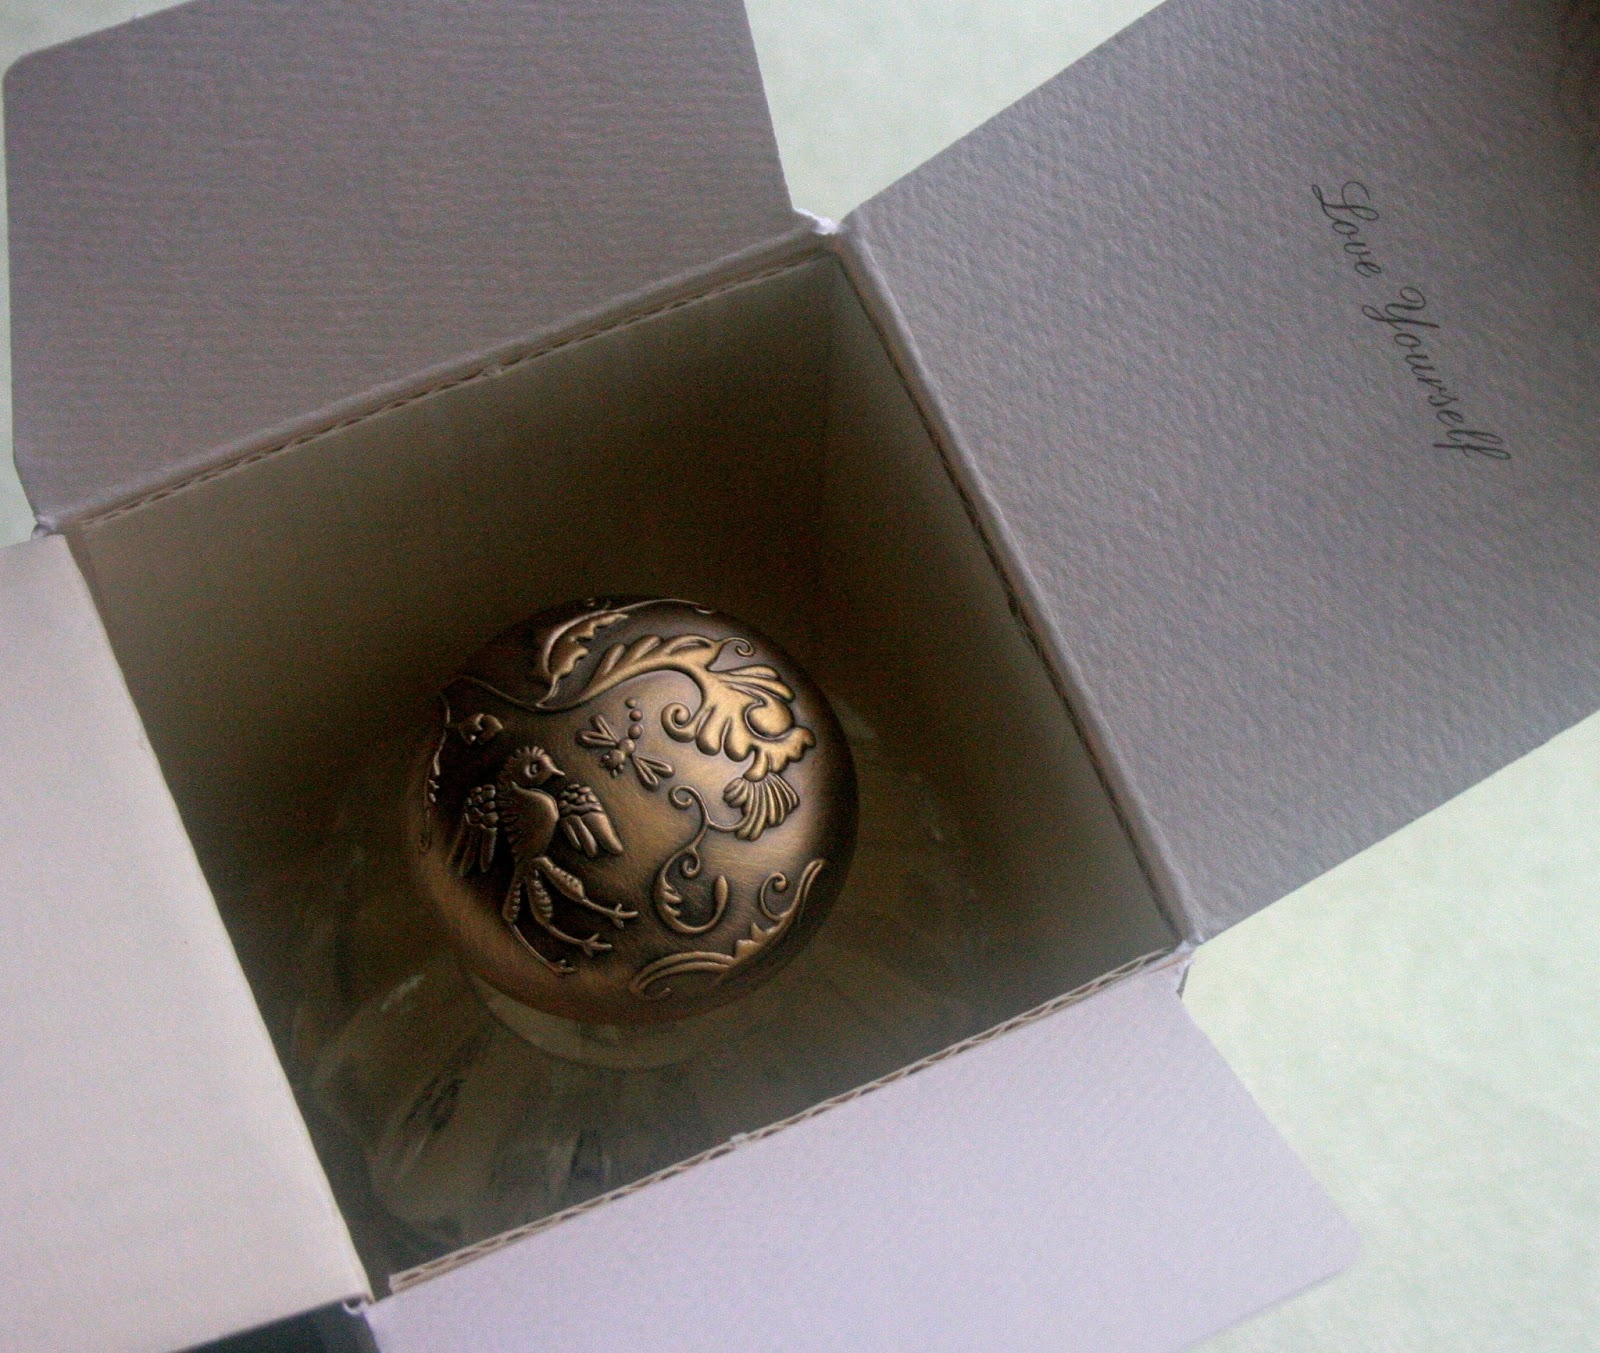 Tocca Liliana Eau de Parfum Packaged in Box